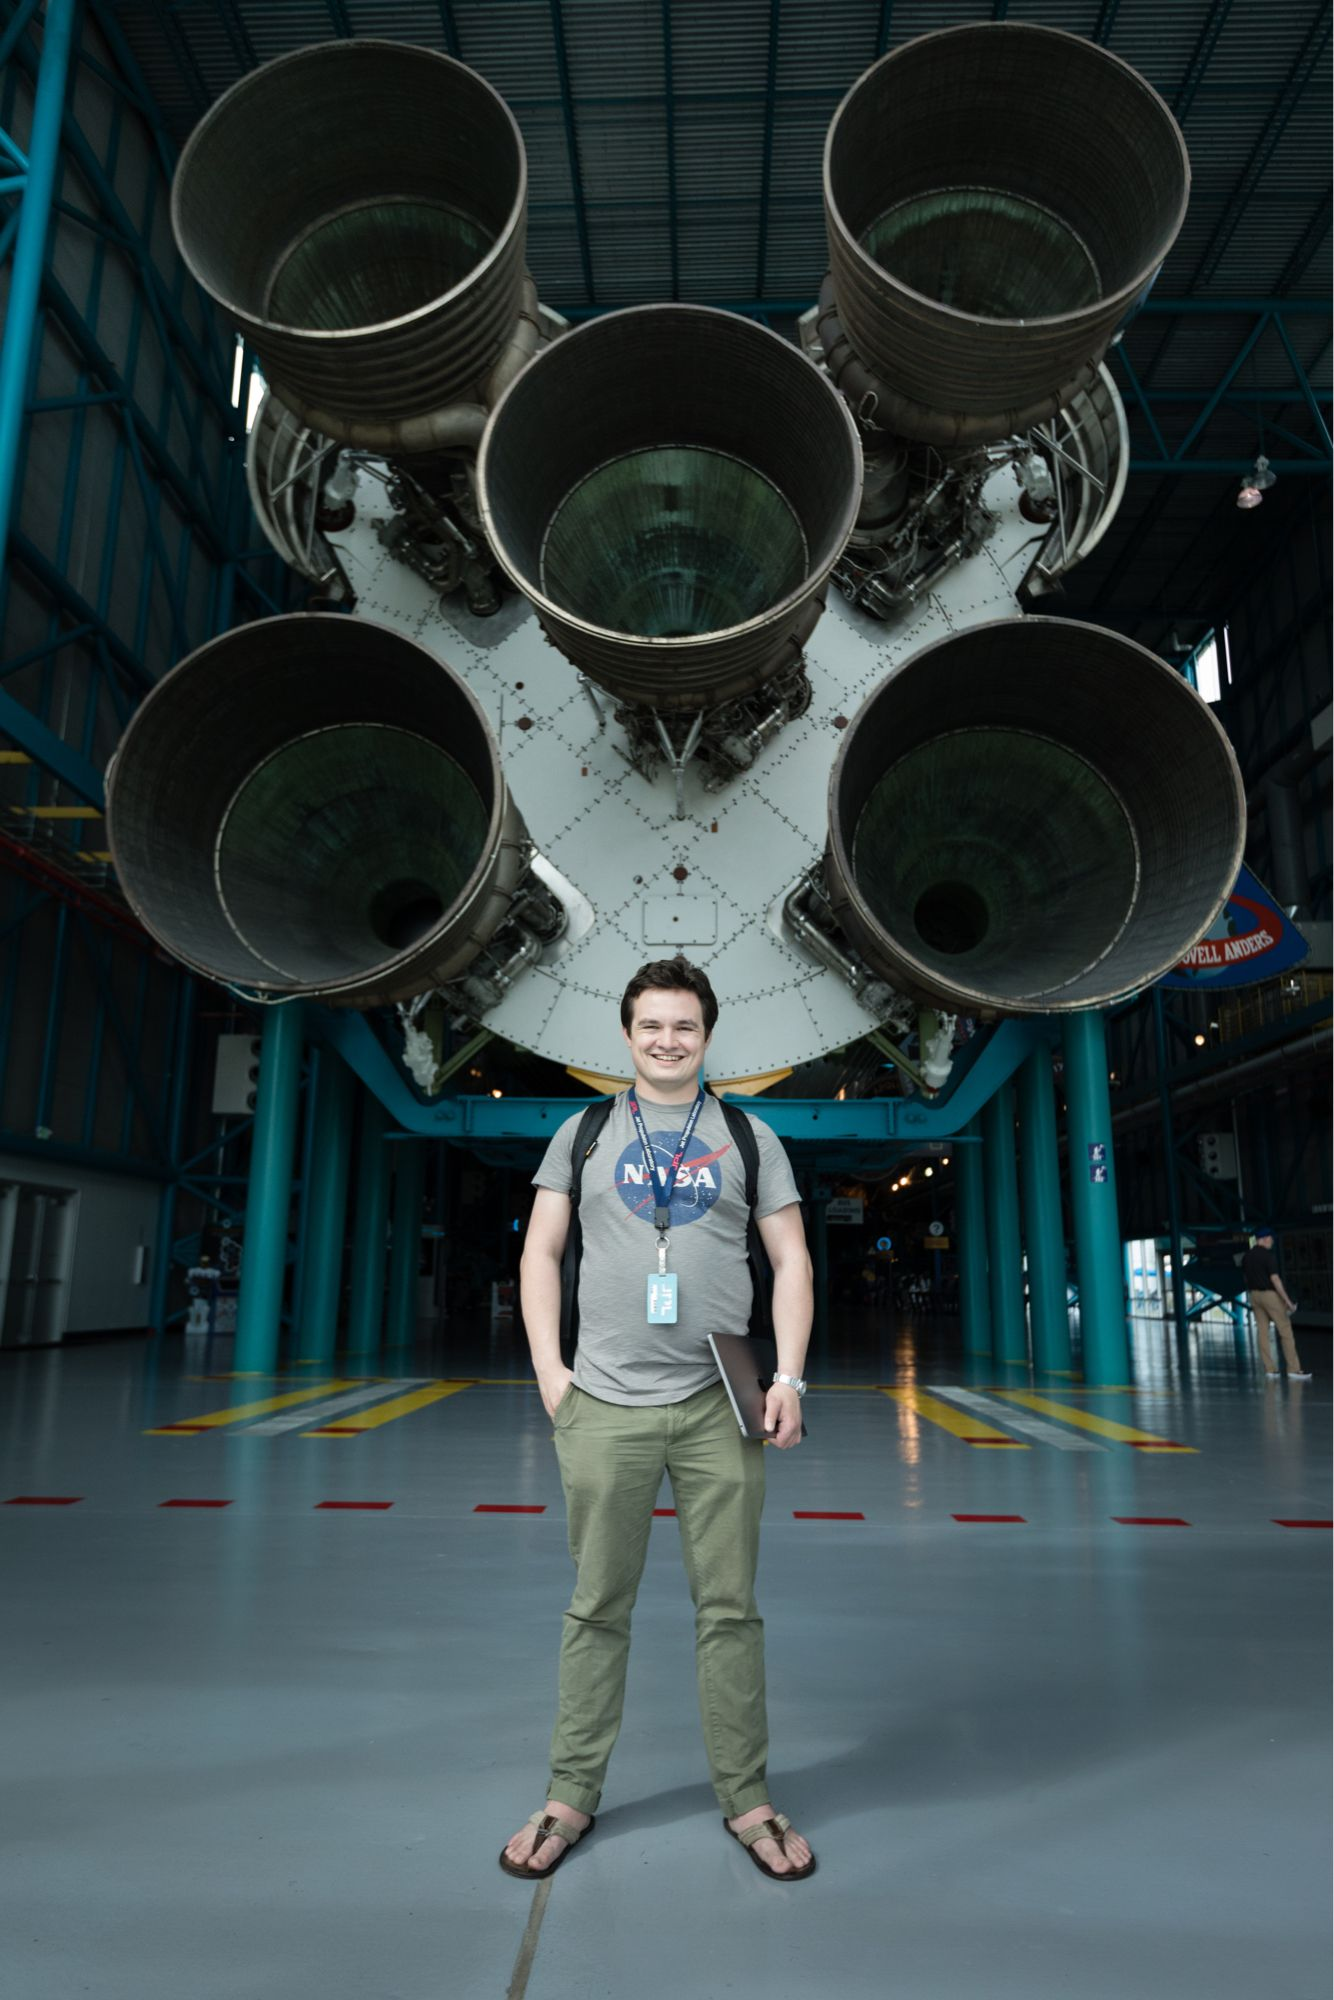 A computer science college student beginning his career at NASA.